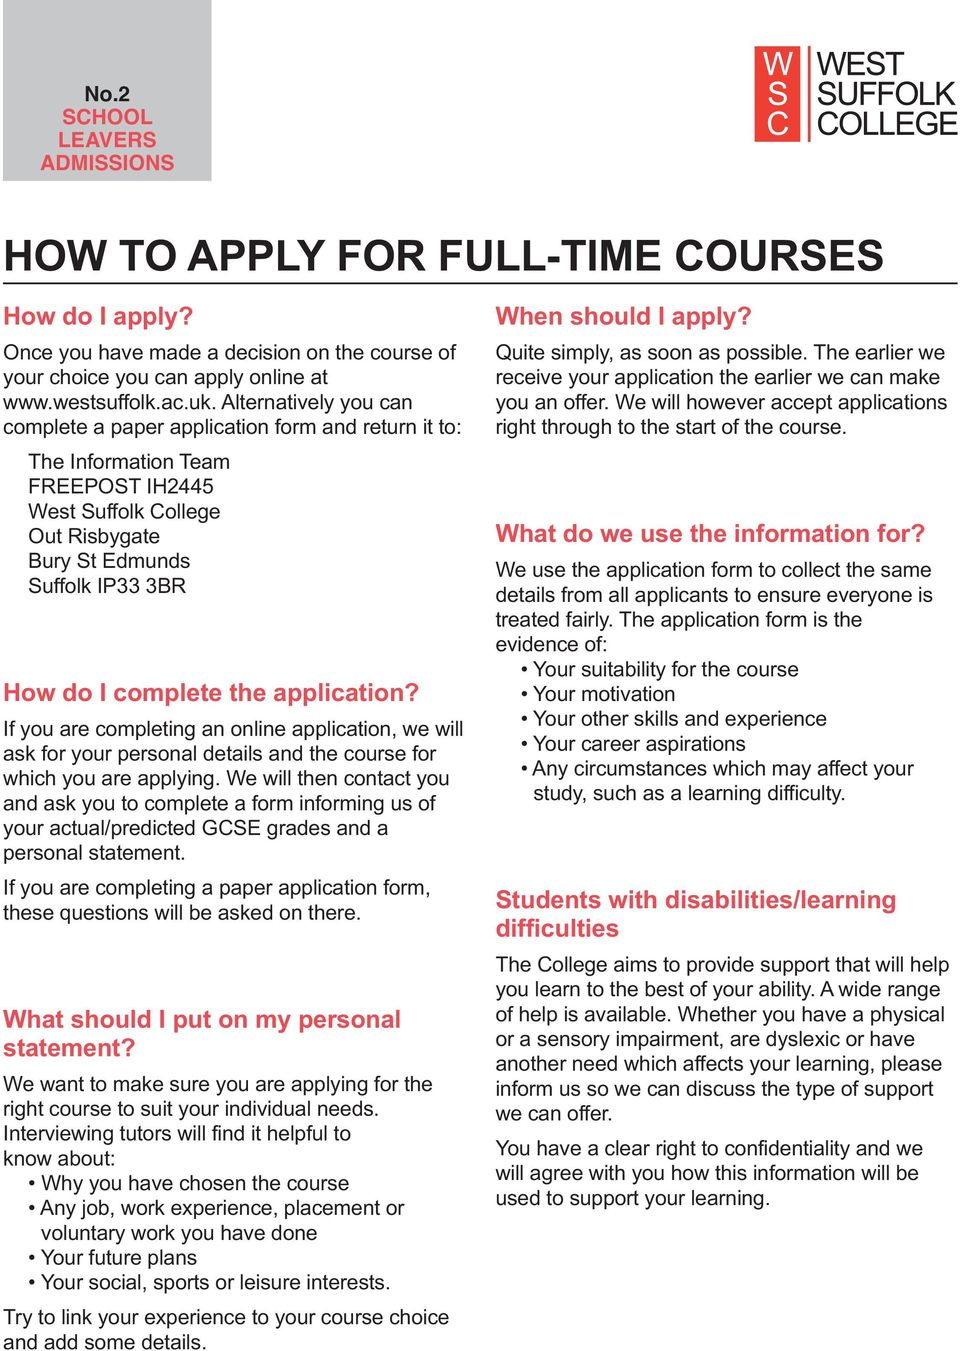 application? If you are completing an online application, we will ask for your personal details the course for which you are applying.